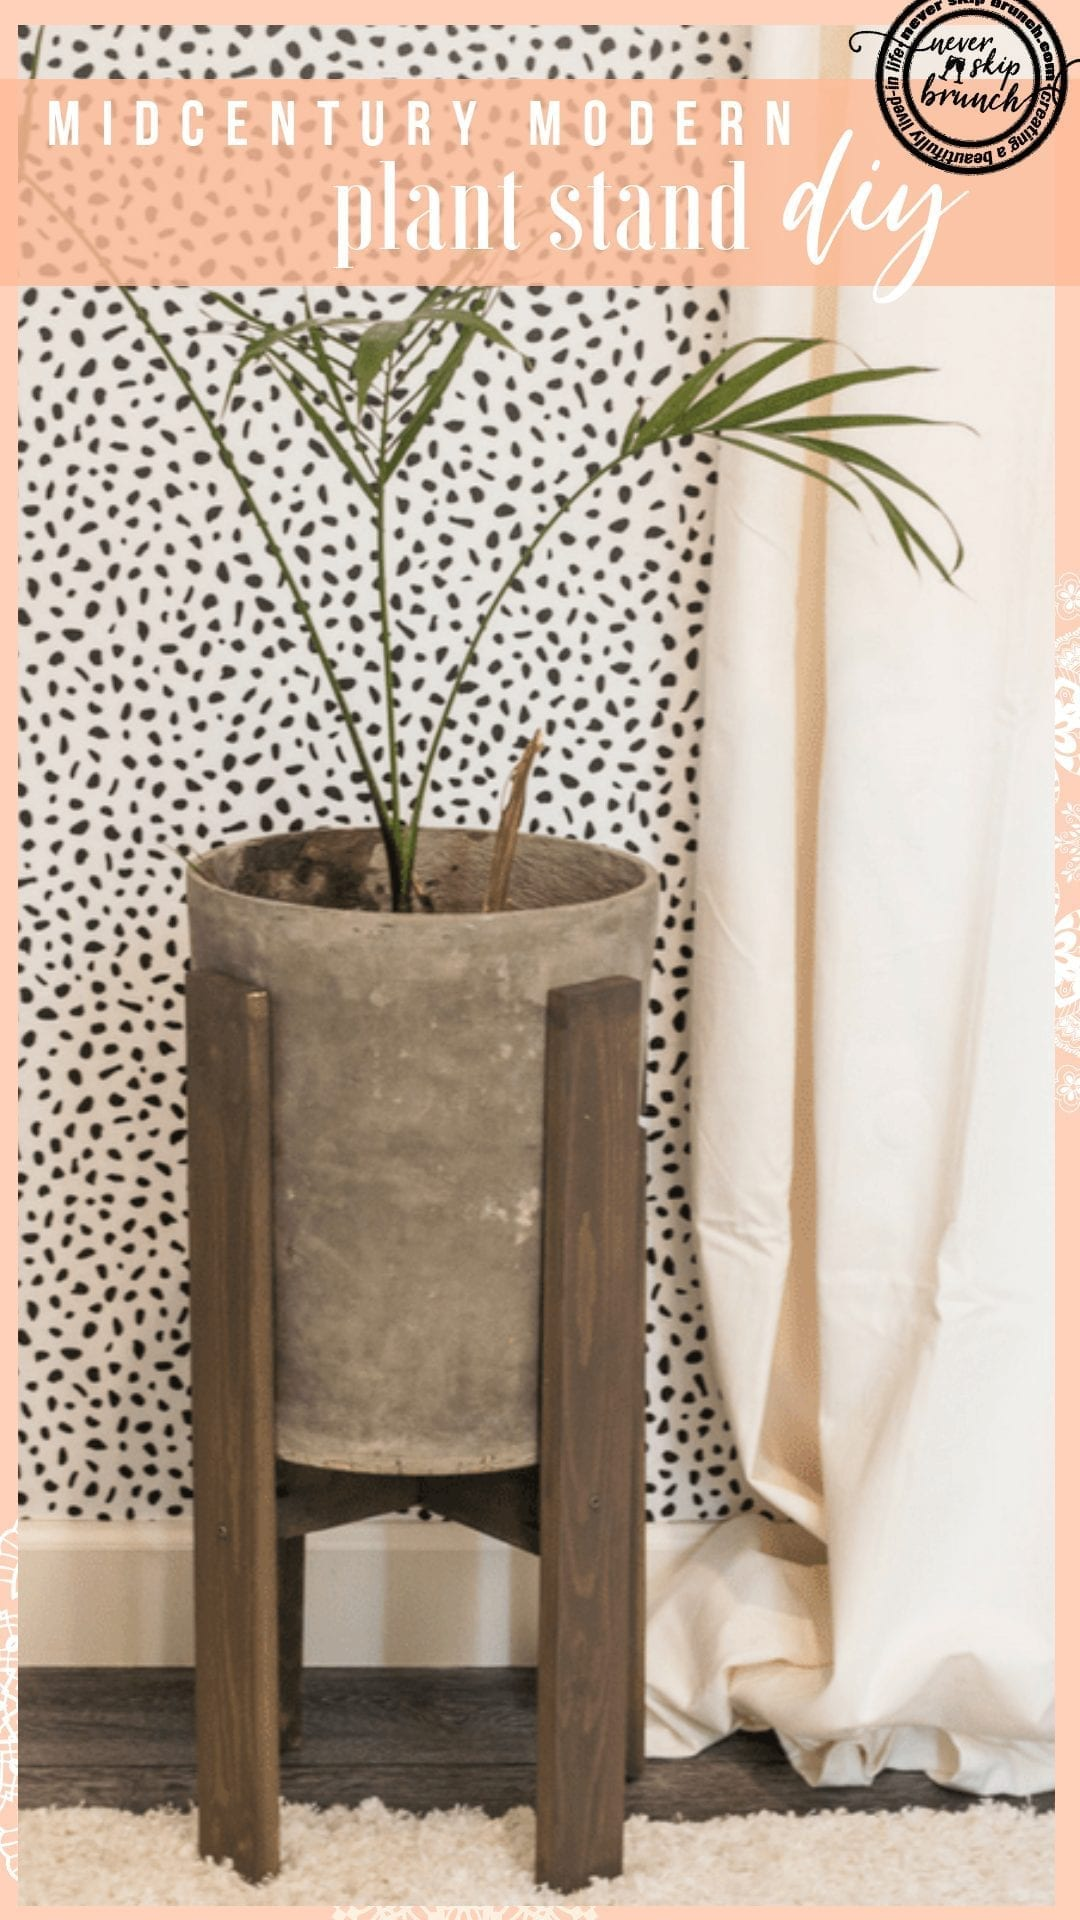 PERFECT for getting an on-trend look for less!! DIY Midcentury Modern Plant Stand | Midcentury Modern planter Stand diy | midmod planter DIY | midcentury modern plant pot | plant stands indoor diy | plant stand ideas indoor living rooms | Never Skip Brunch by Cara Newhart | #decor #diy #plants #neverskipbrunch